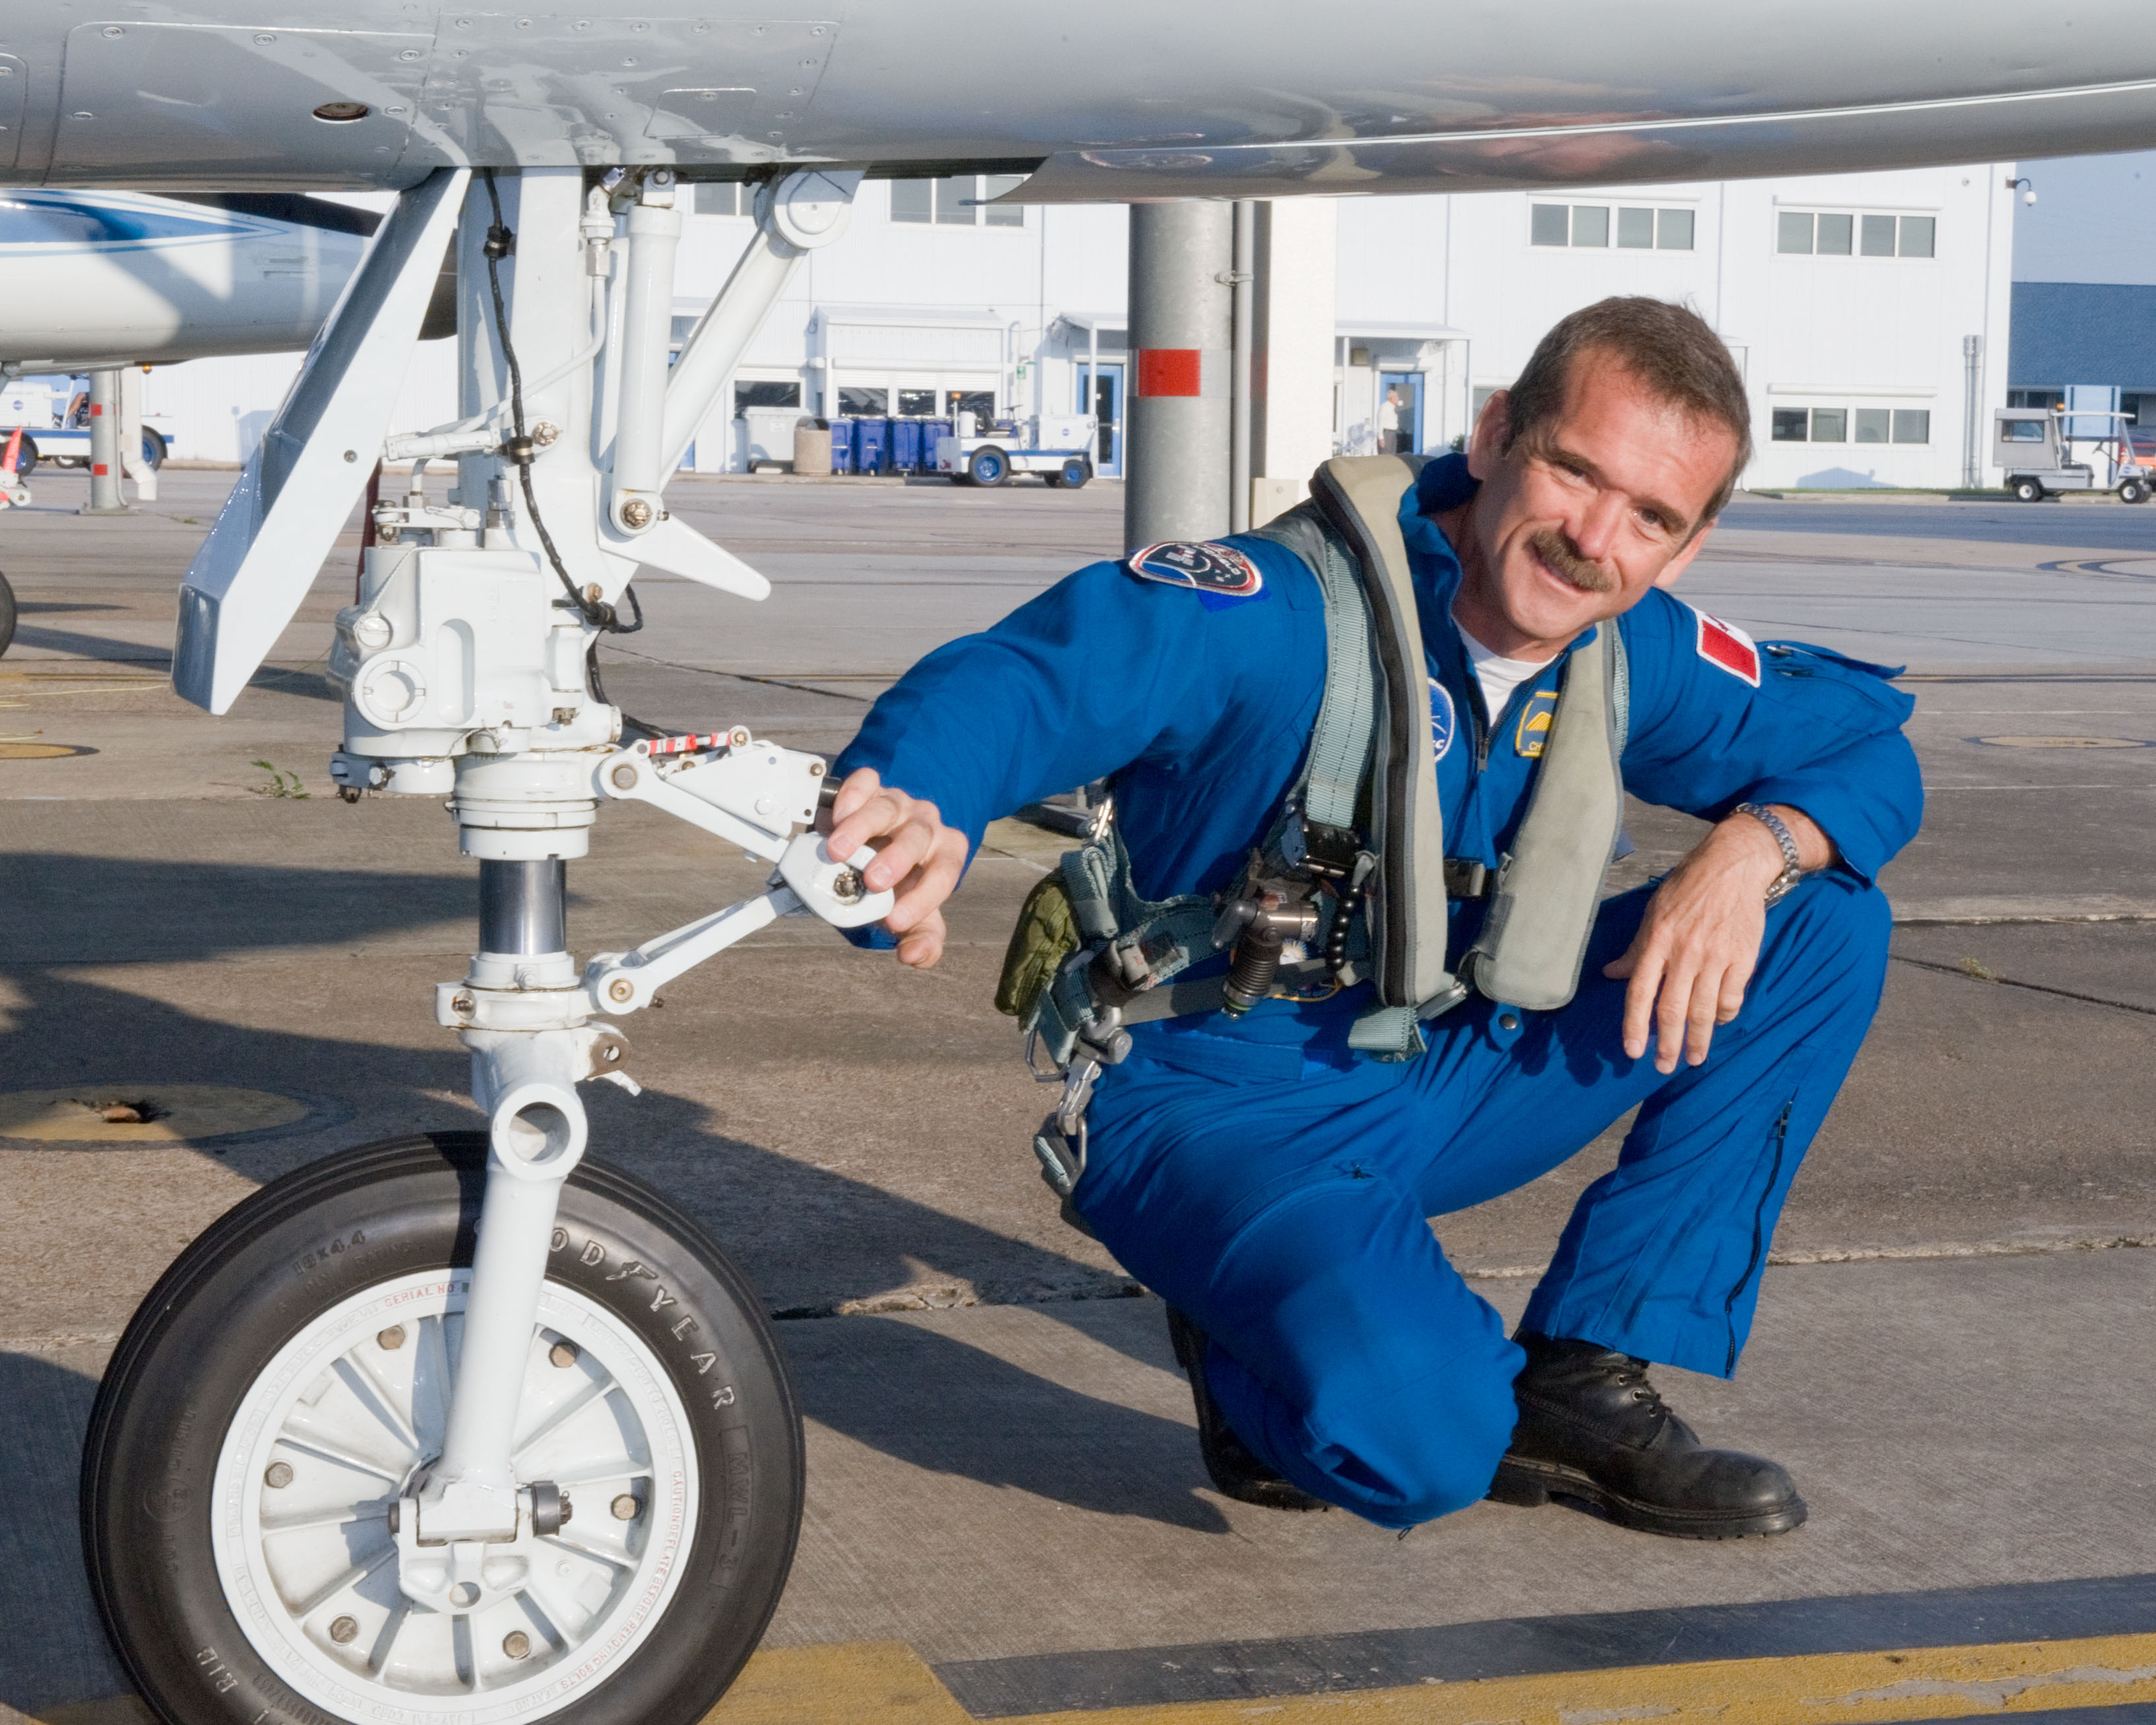 Expedition 35 (Soyuz 33S) crew member Chris Hadfield preparing for a T-38 flight.  Photo Date: May 14, 2012.  Location: Ellington Field - Hangar 276 - Tarmac.  Photographer: Robert Markowitz